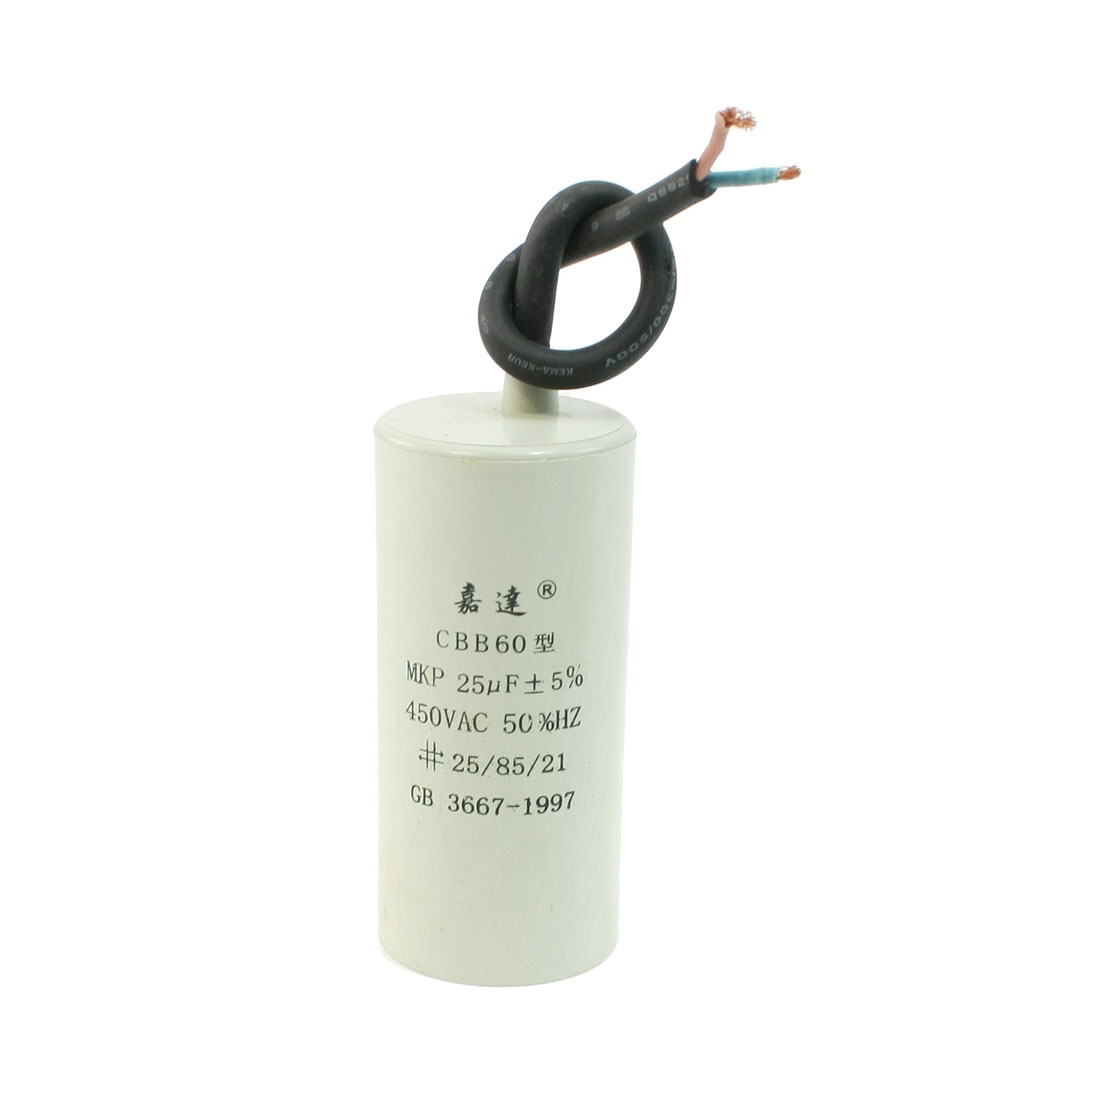 CBB60 AC 450V 25uF Cylindrical Non Polar Motor Capacitor for Washing Machine